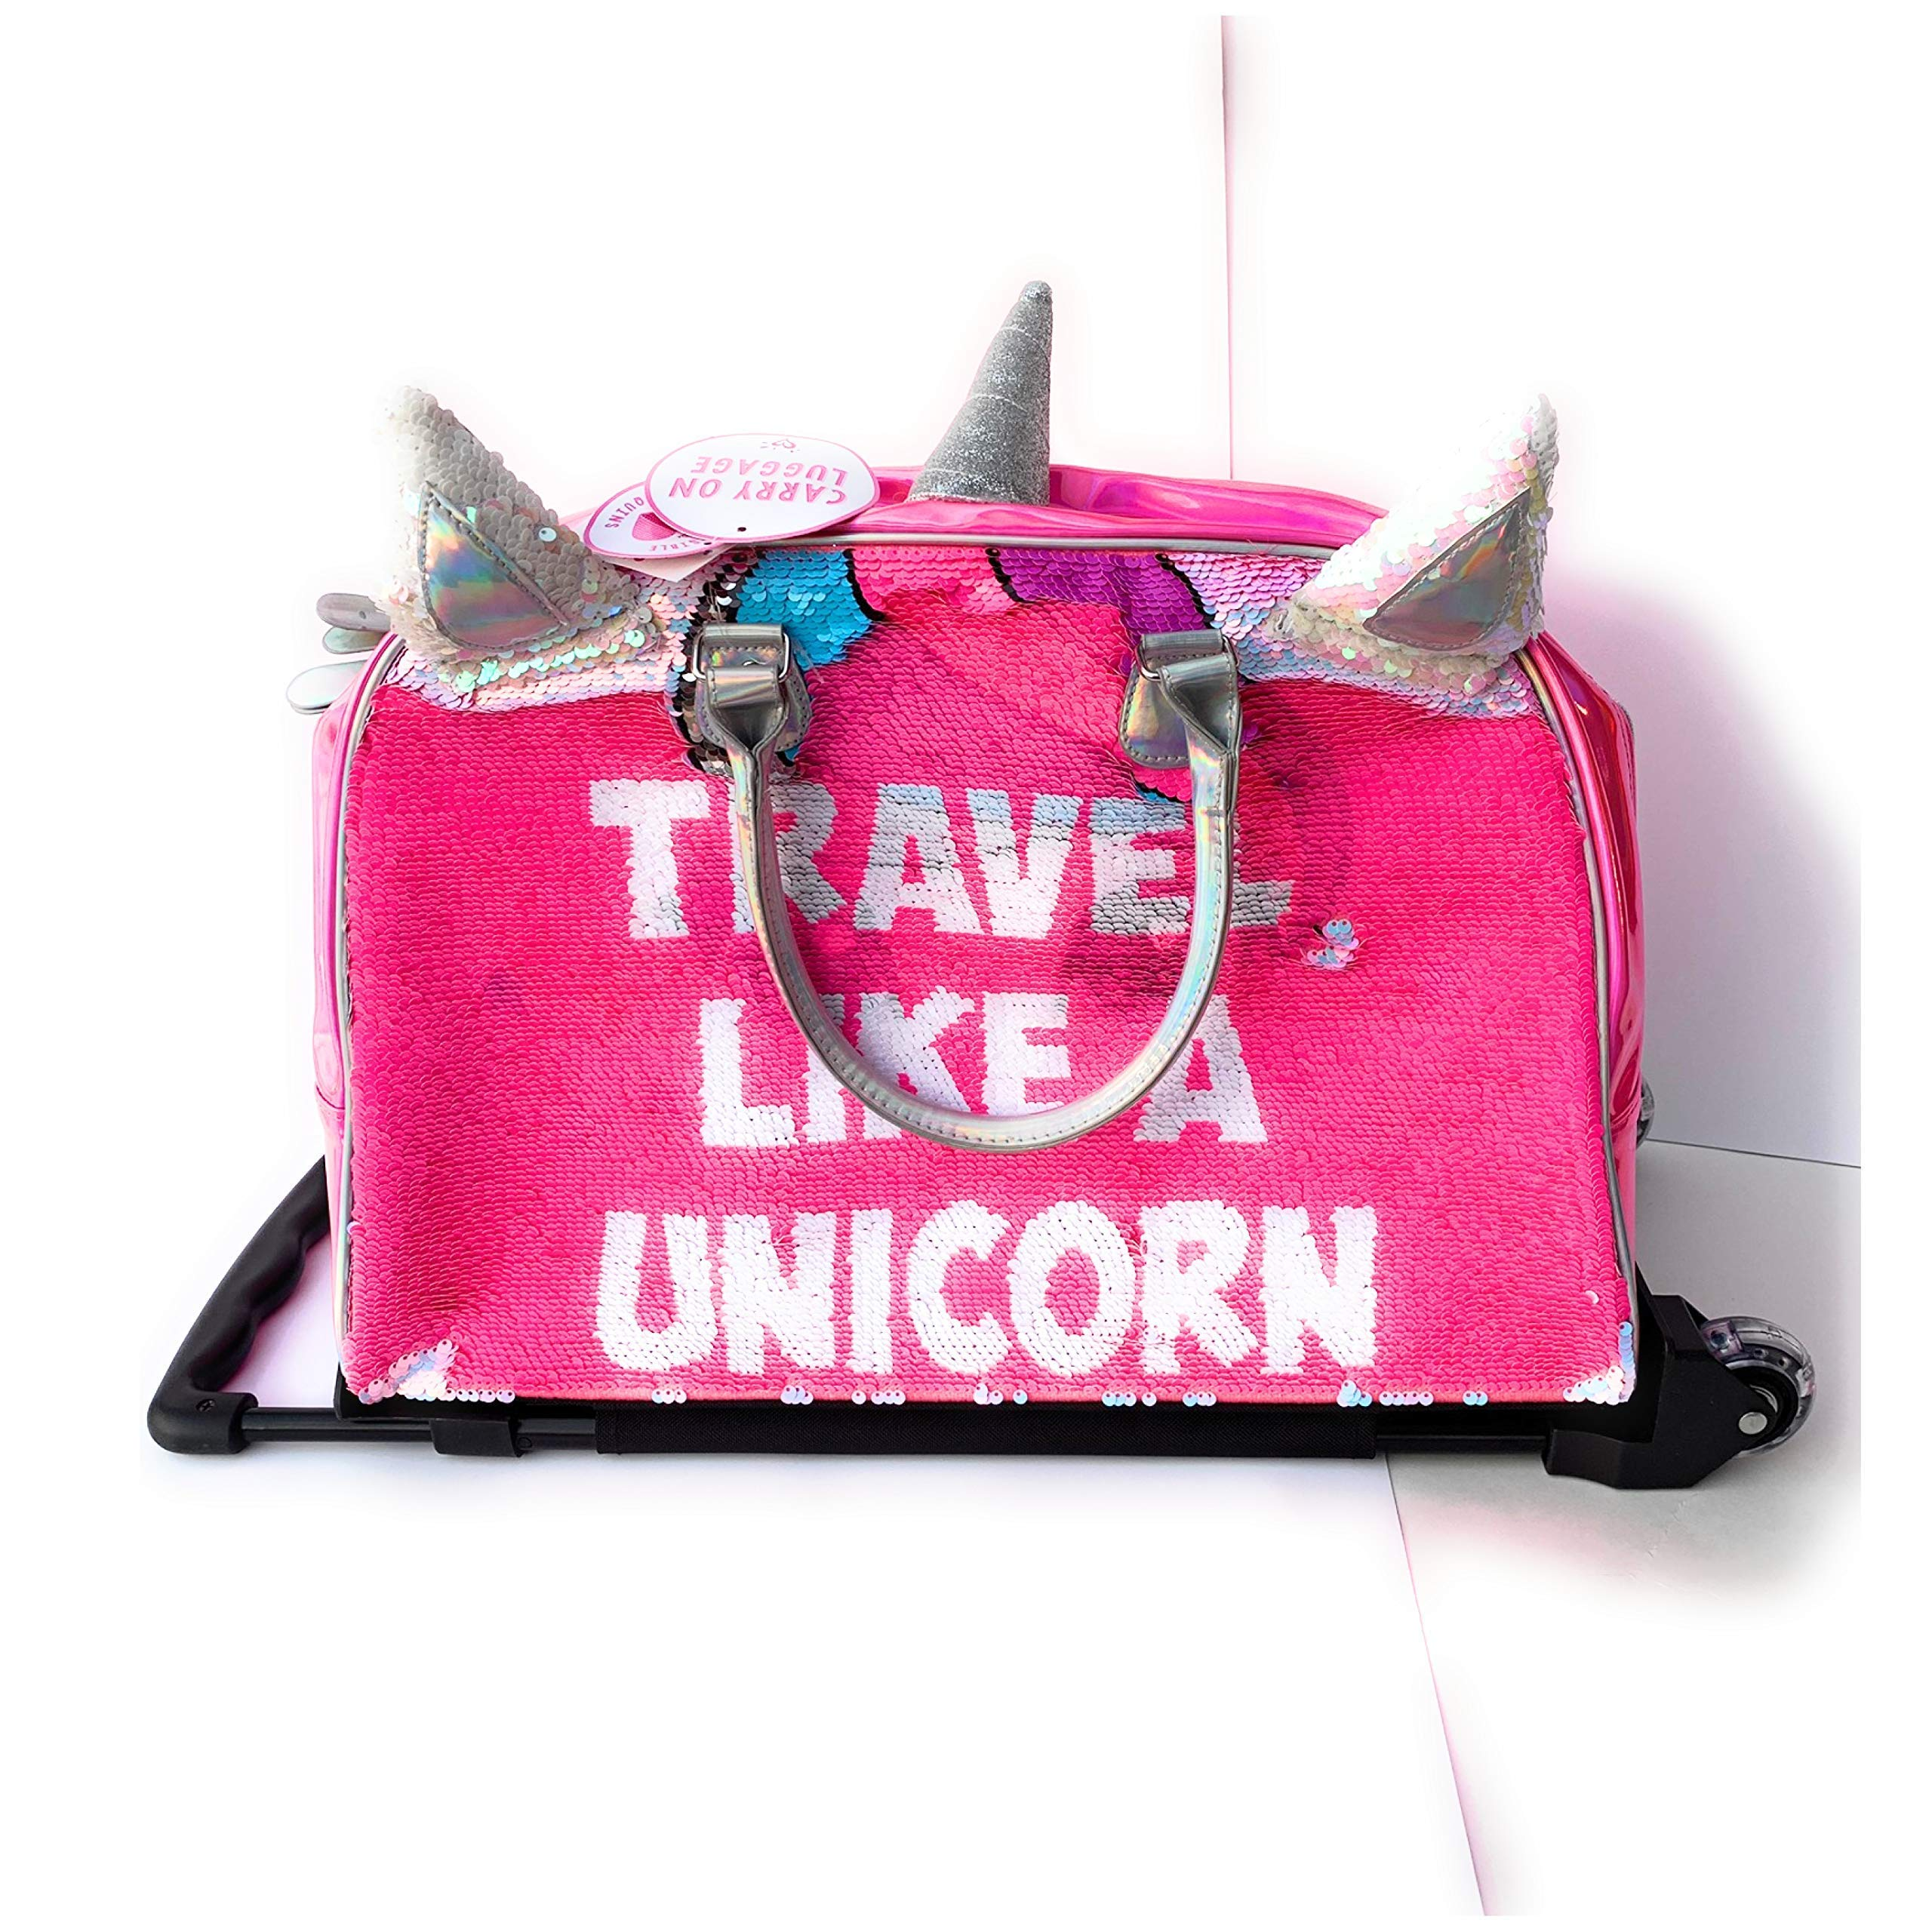 Justice Girls Exclusive Pink Reversible Seqiun Unicorn Carry On Luggage Suitcase Travel Bag by Justice (Image #3)